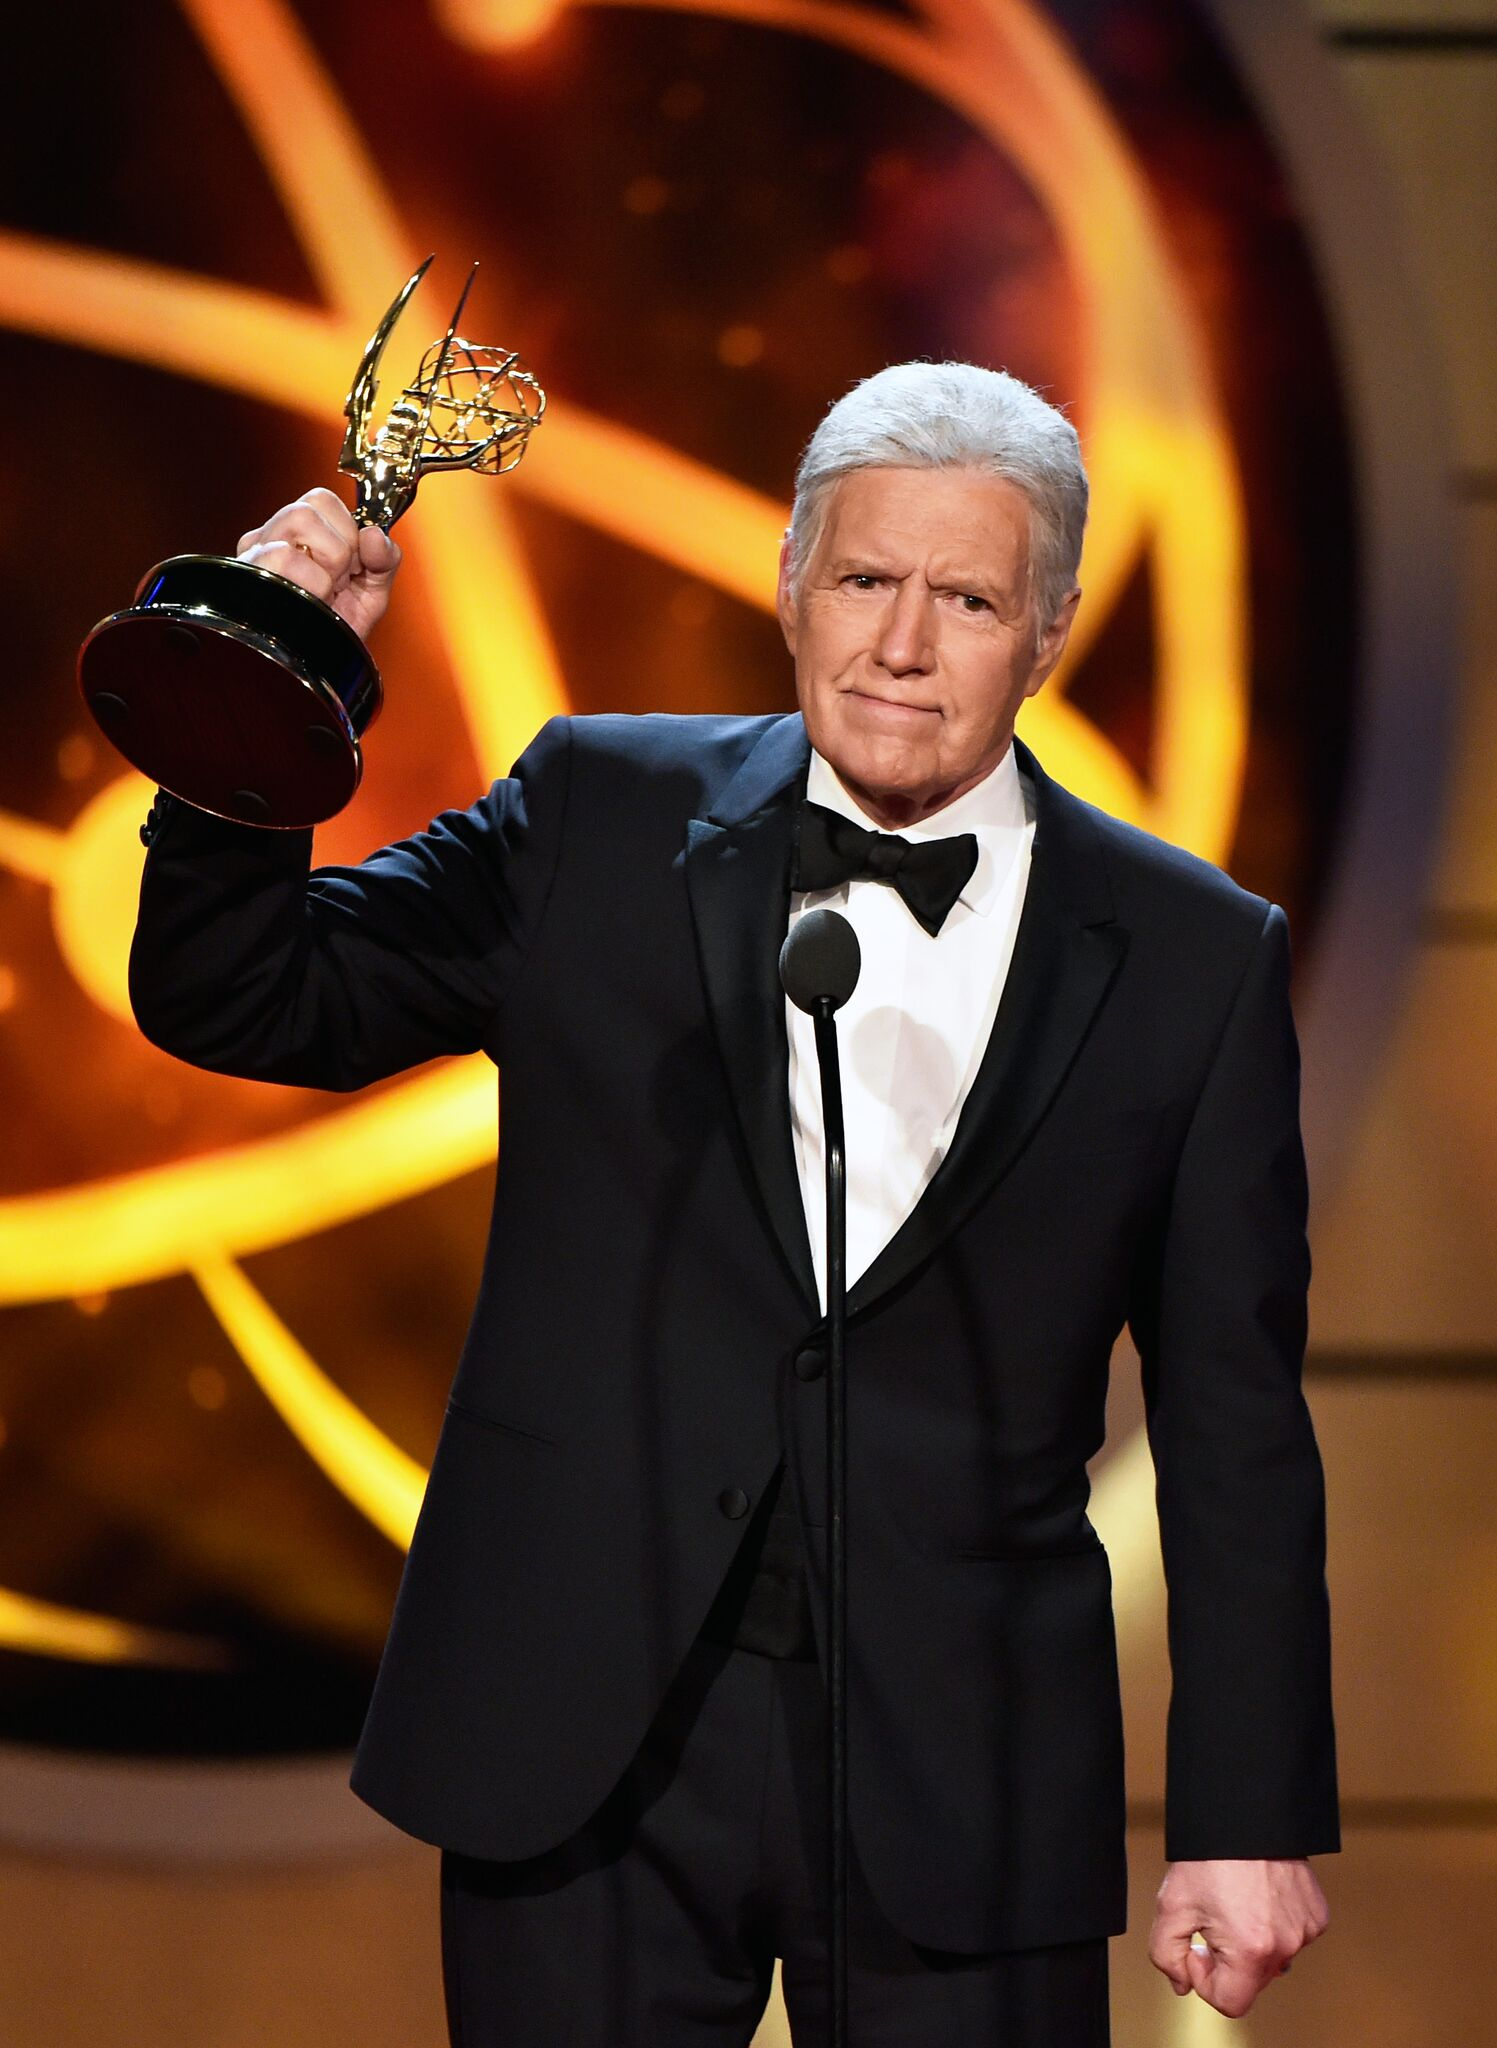 Alex Trebek accepts the Daytime Emmy Award for Outstanding Game Show Host onstage during the 46th annual Daytime Emmy Awards   Getty Images